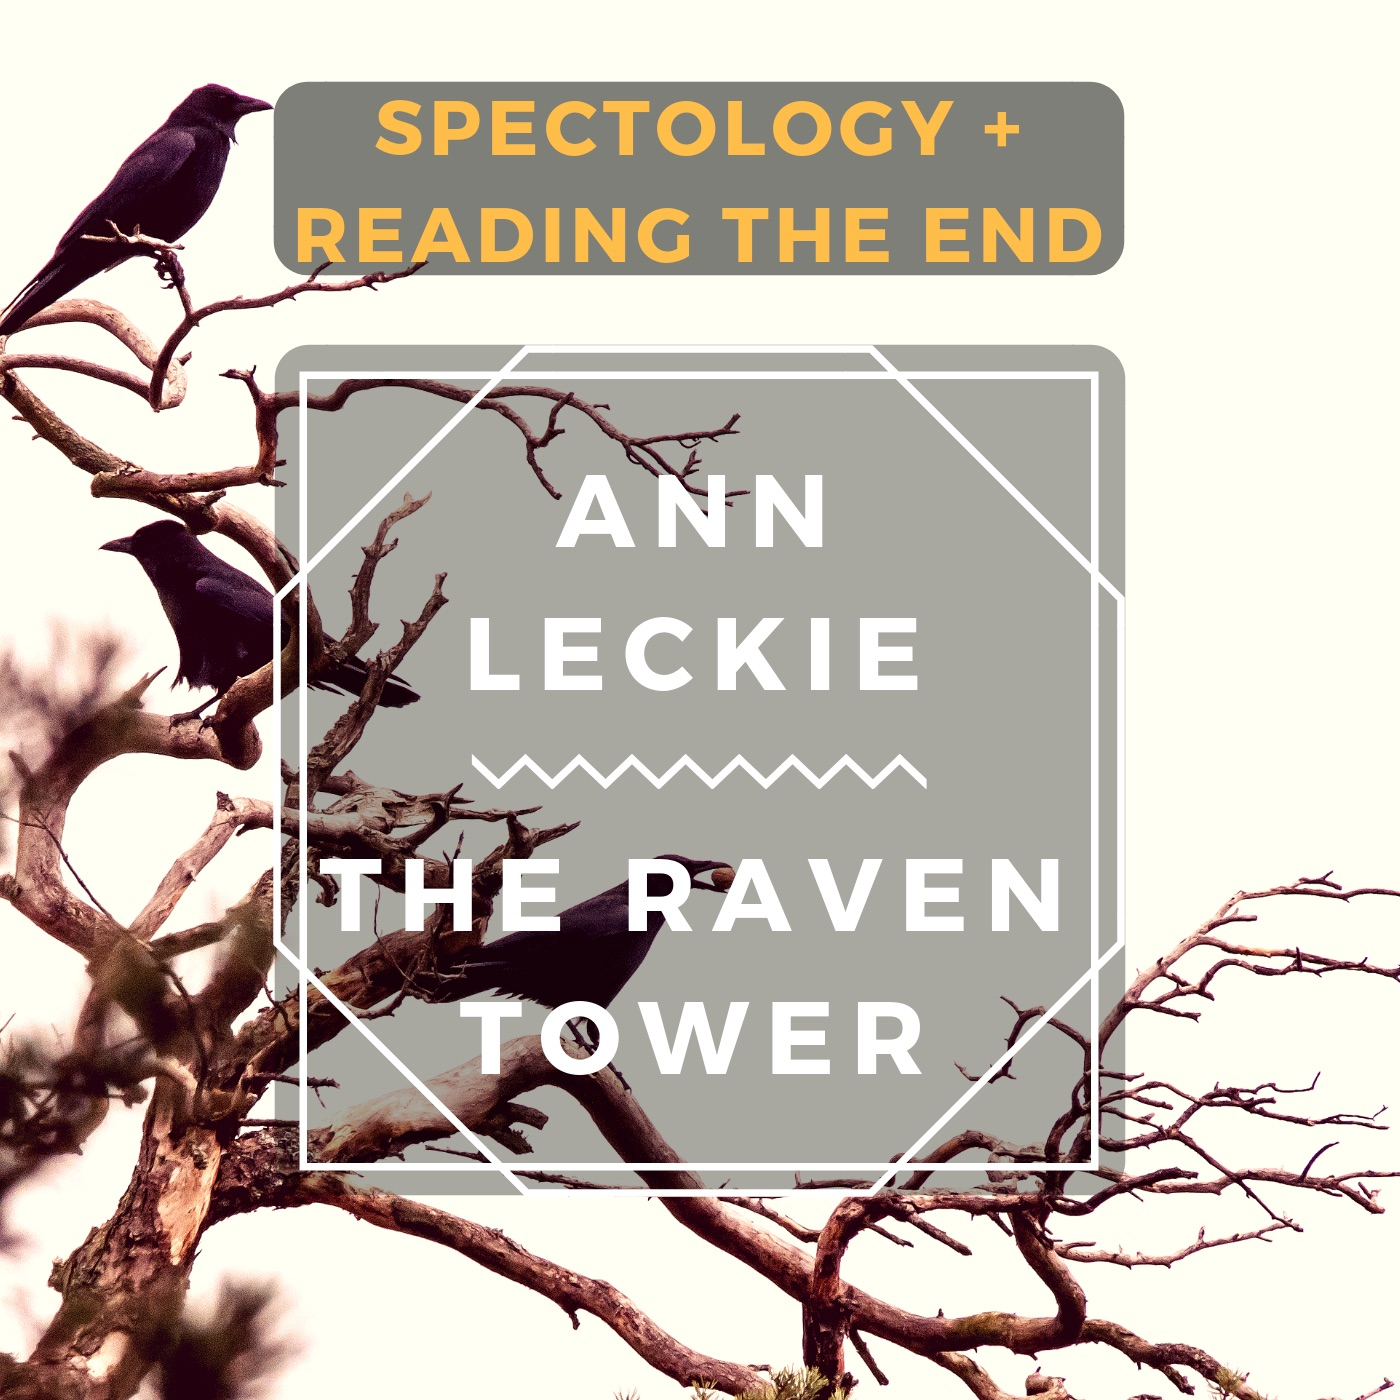 14 1: The Raven Tower pre-read w/ Reading the End: Fantasy, Genre